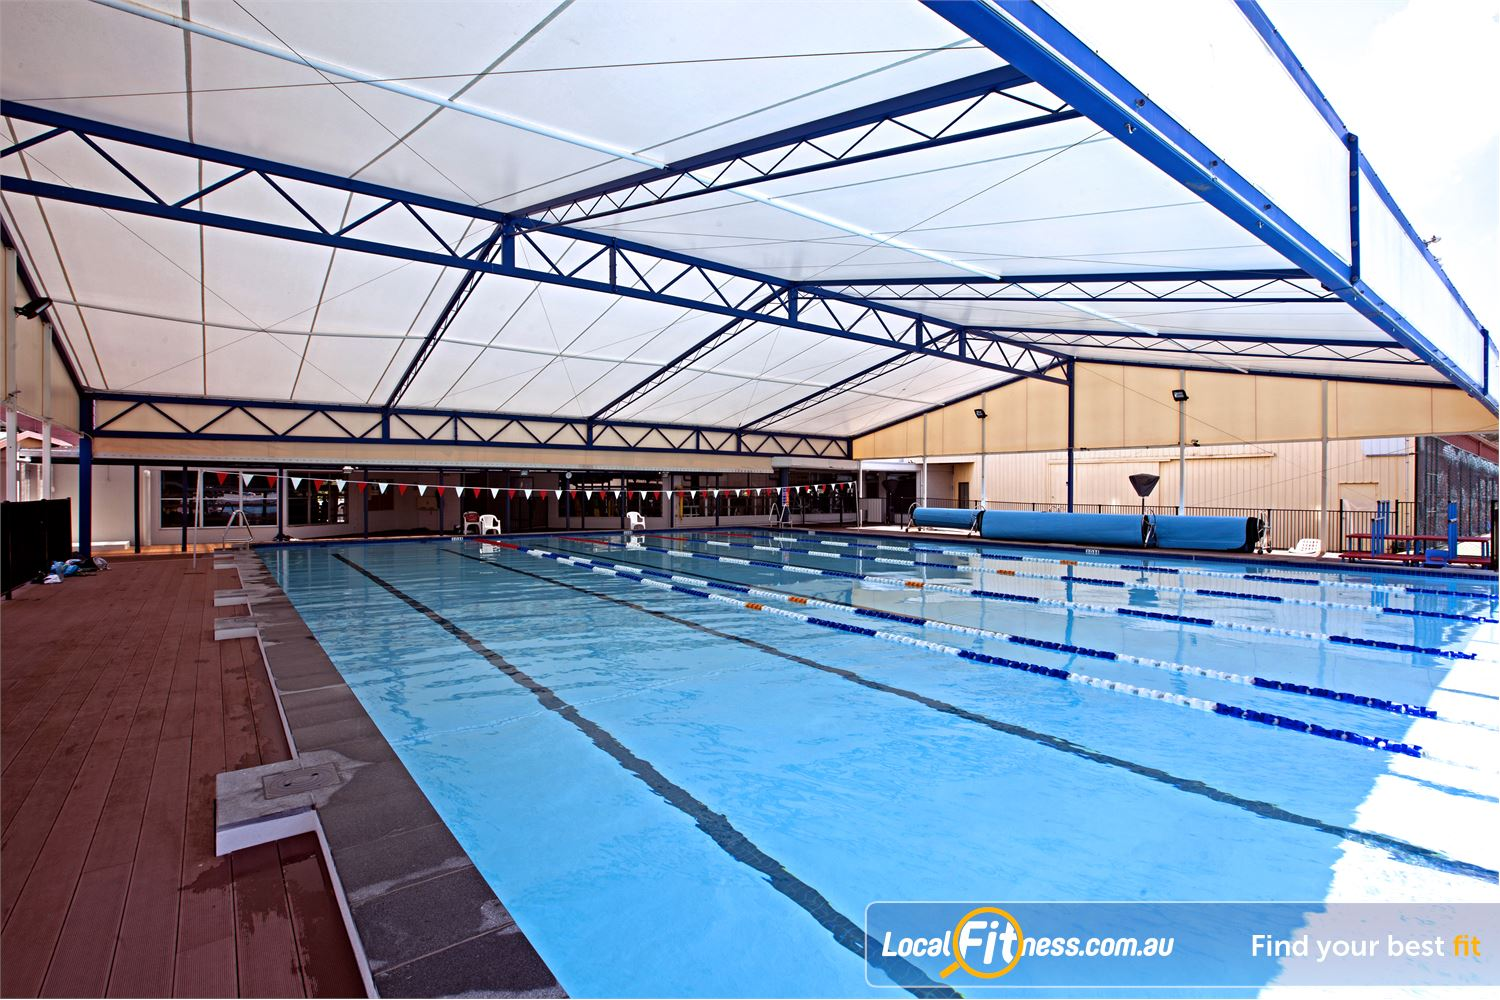 Goodlife Health Clubs Alexandra Hills Join our aqua classes with the undercover swimming pool area.